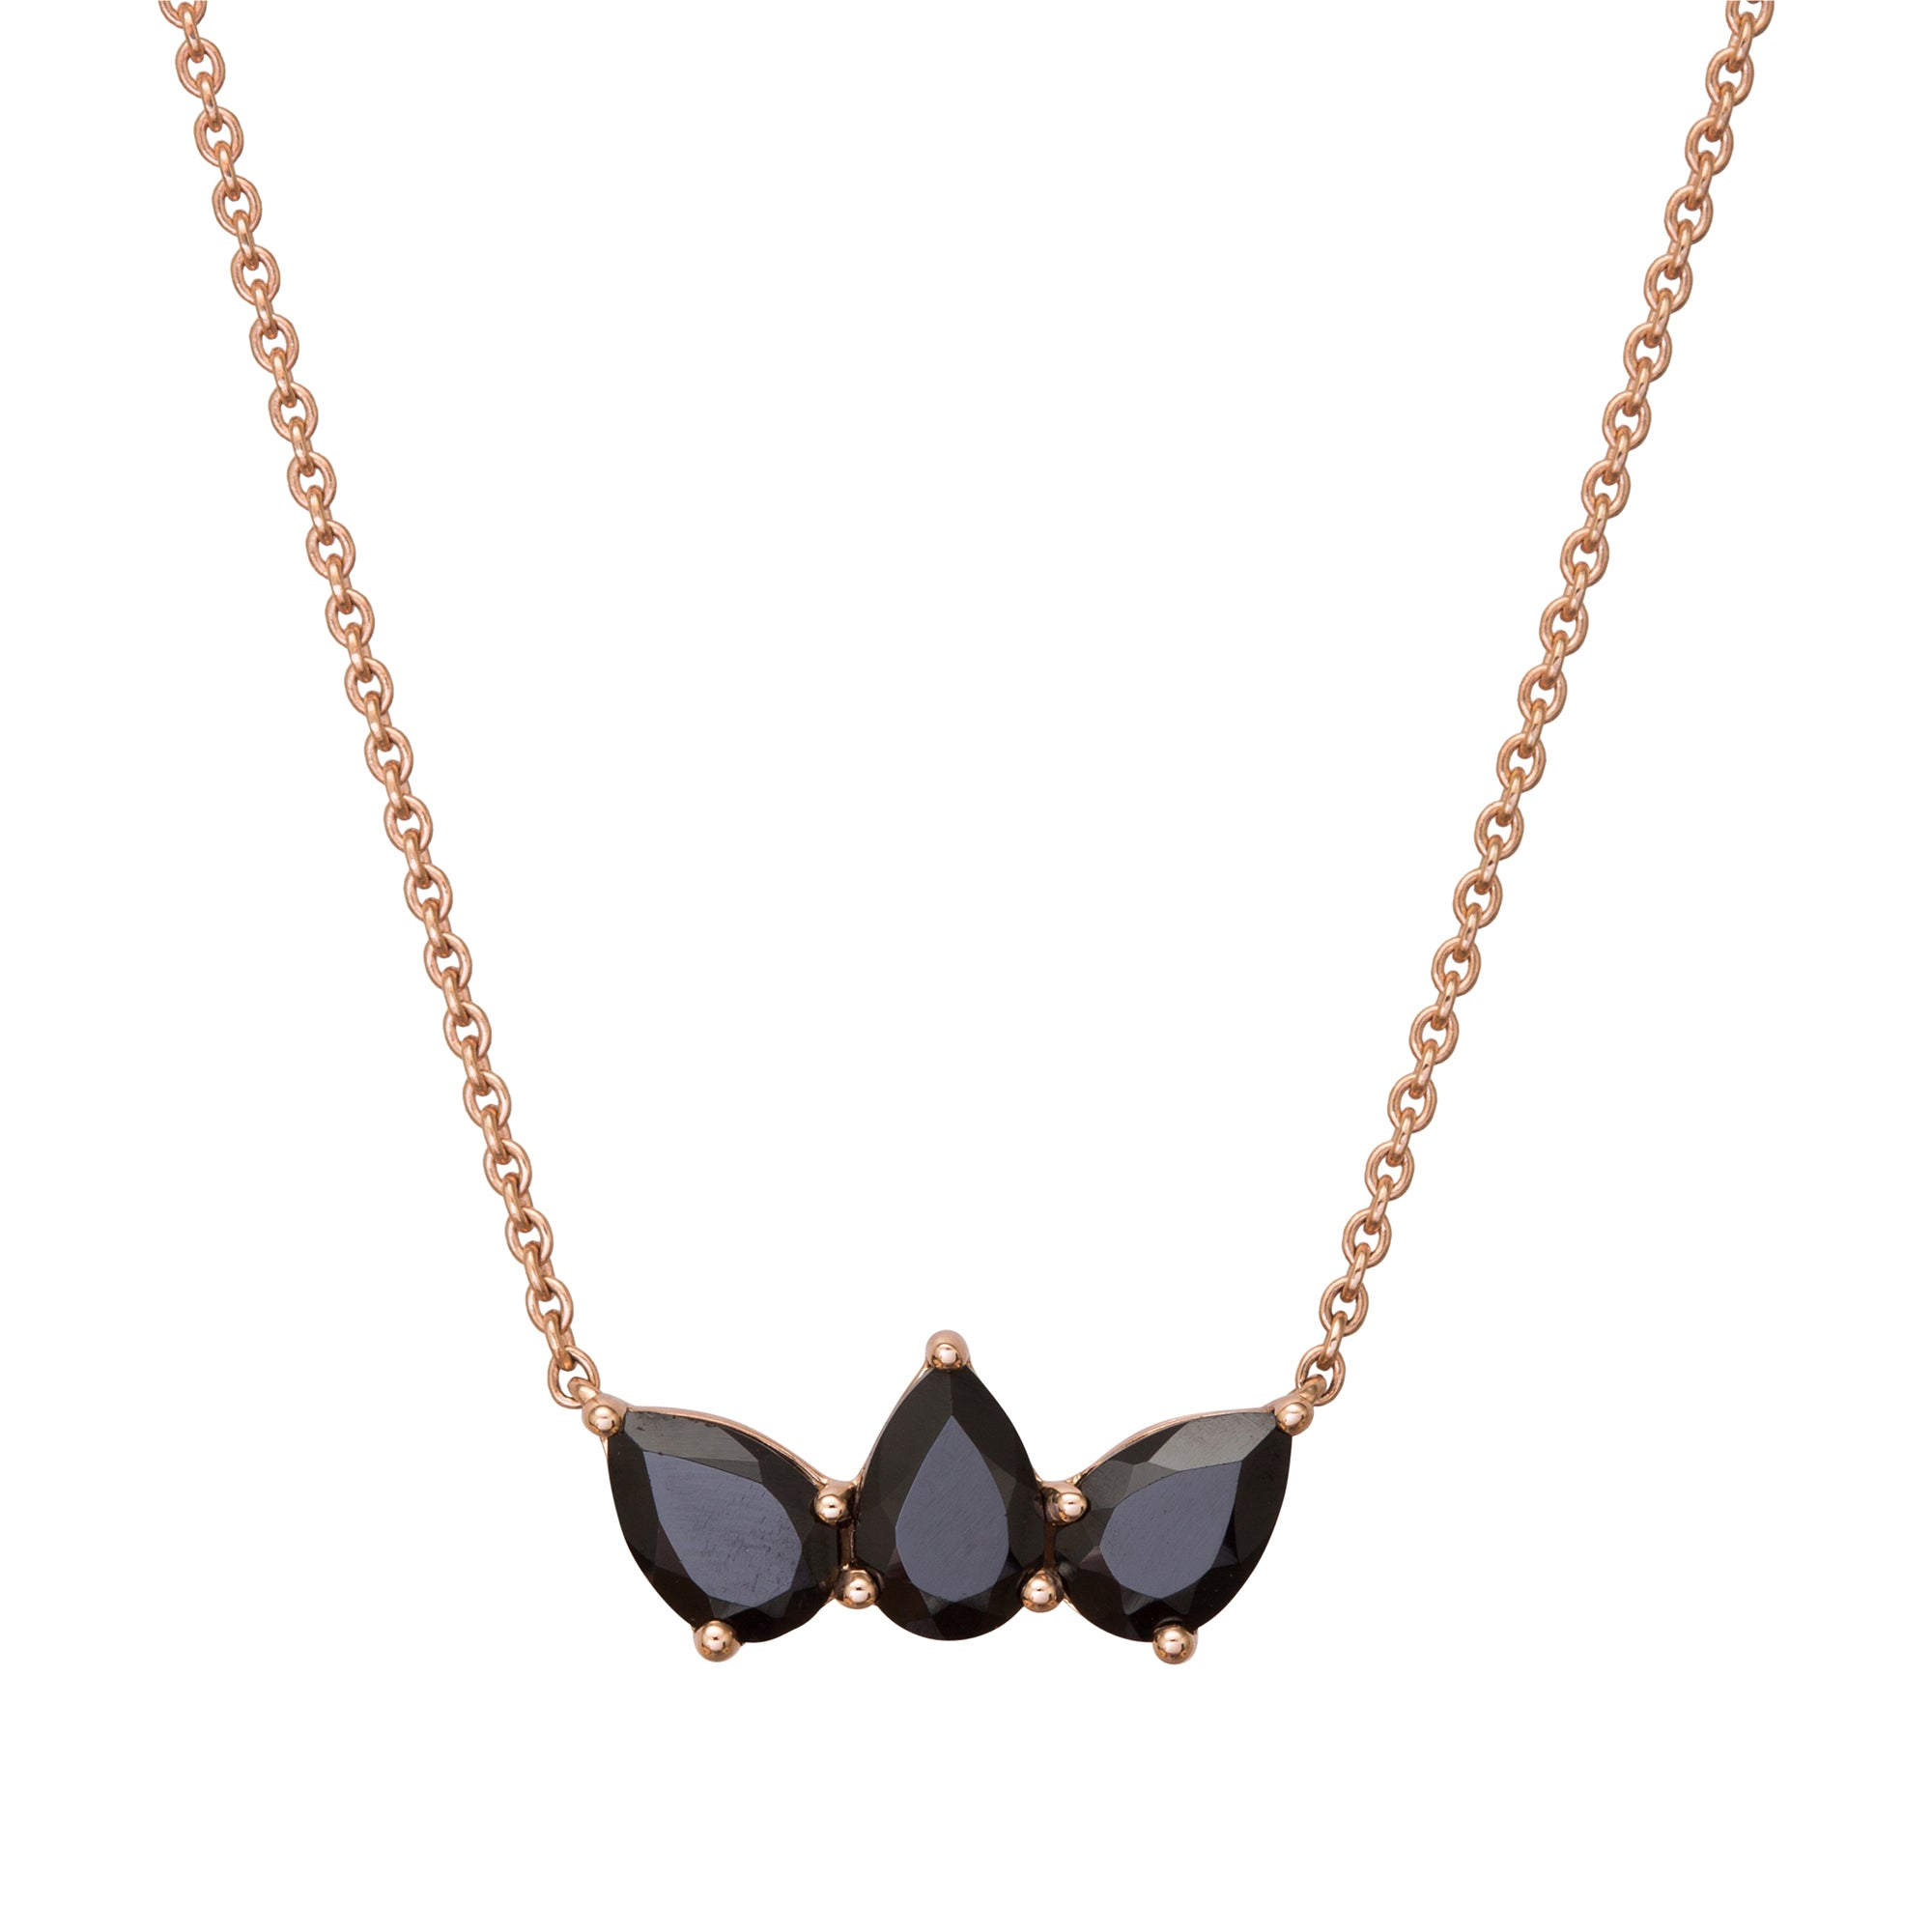 Black Spinel Olympia Necklace by Altruist for Broken English Jewelry